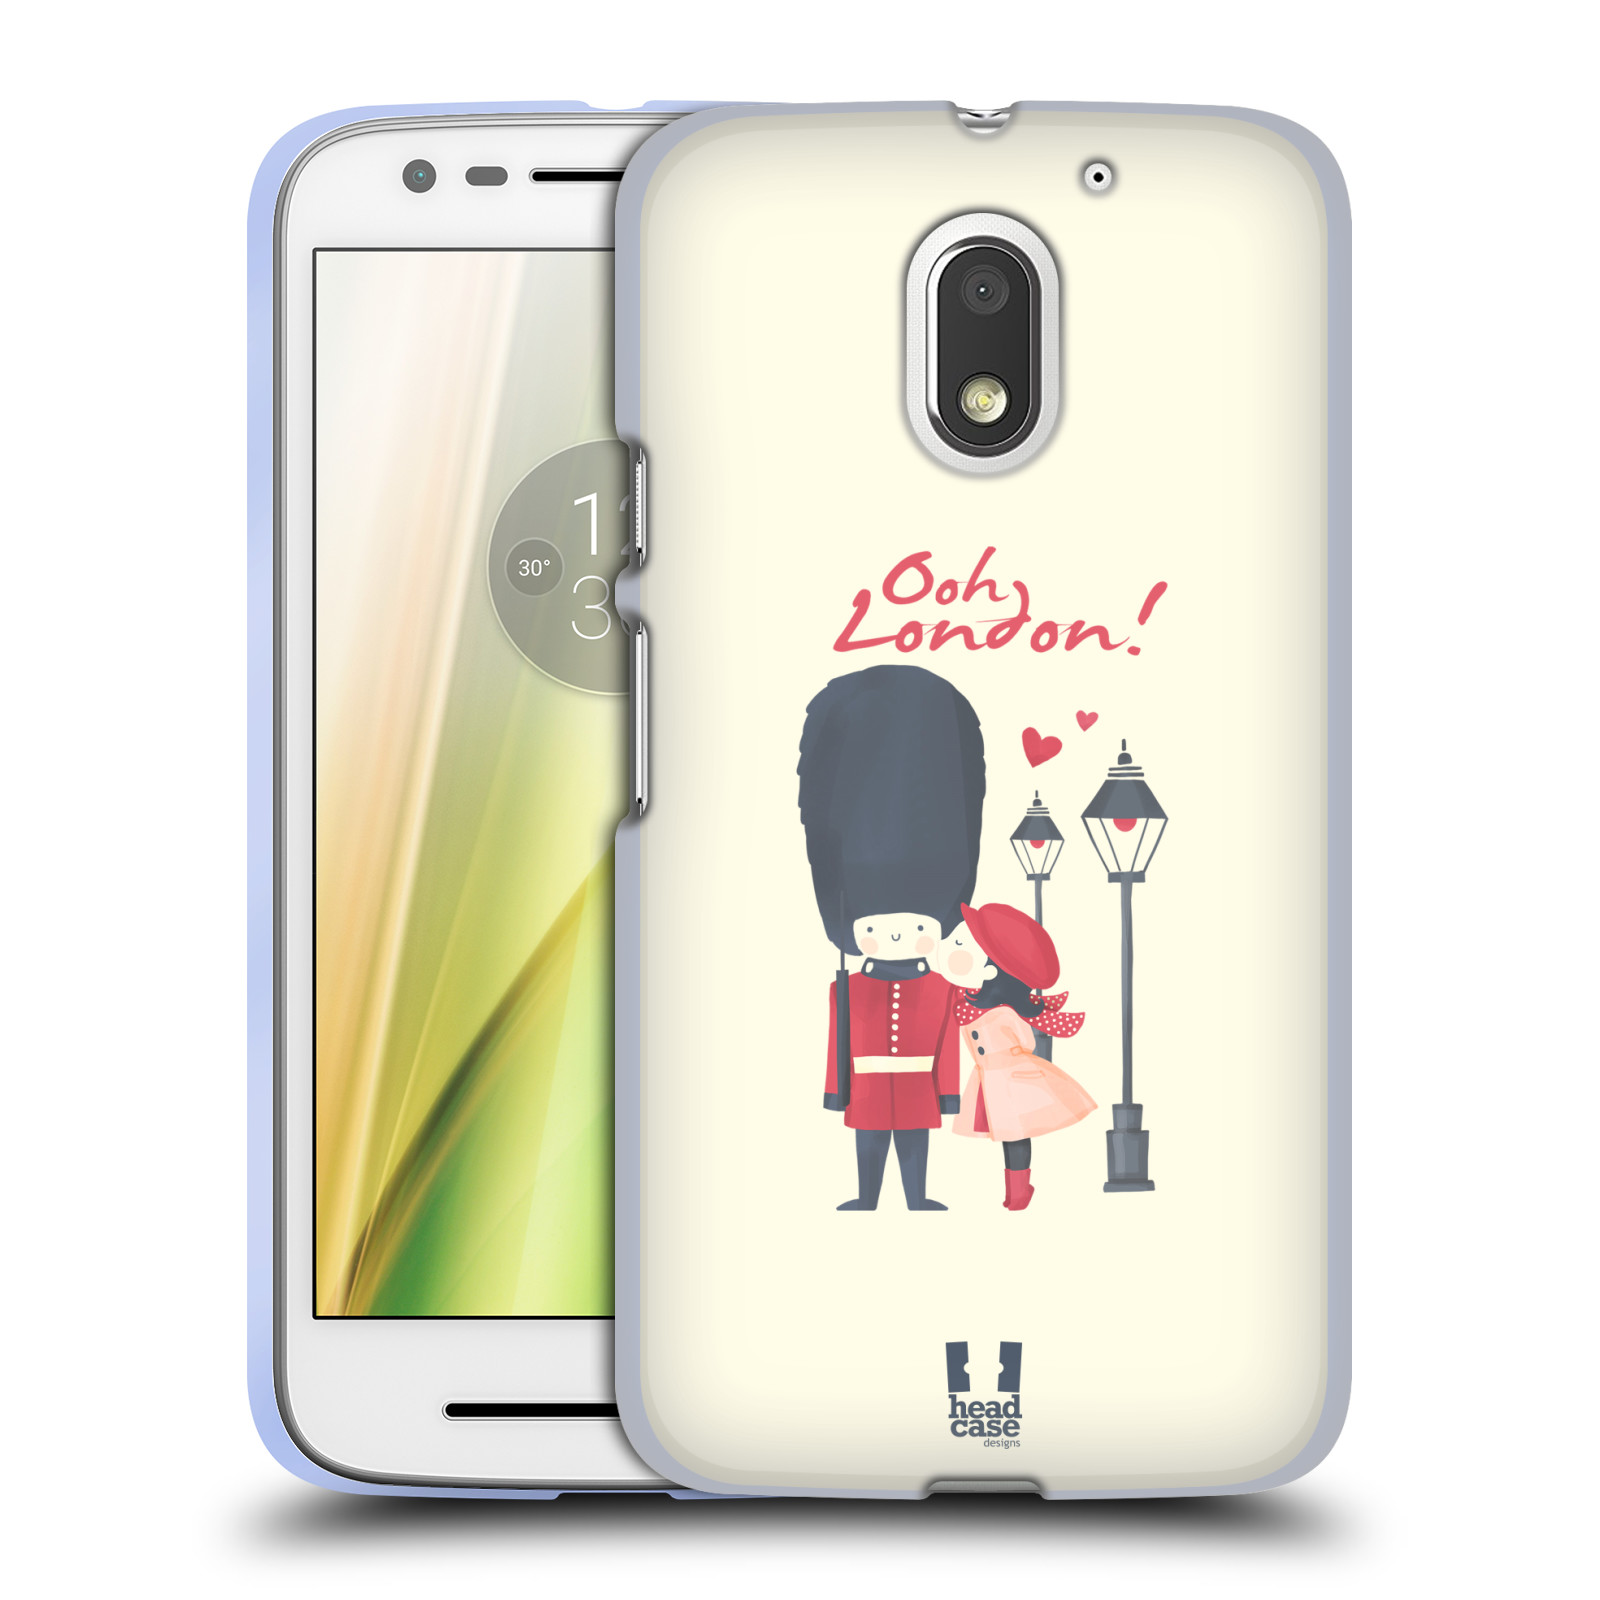 HEAD-CASE-DESIGNS-JE-REVE-LONDRES-ETUI-COQUE-EN-GEL-POUR-MOTOROLA-MOTO-E3-POWER